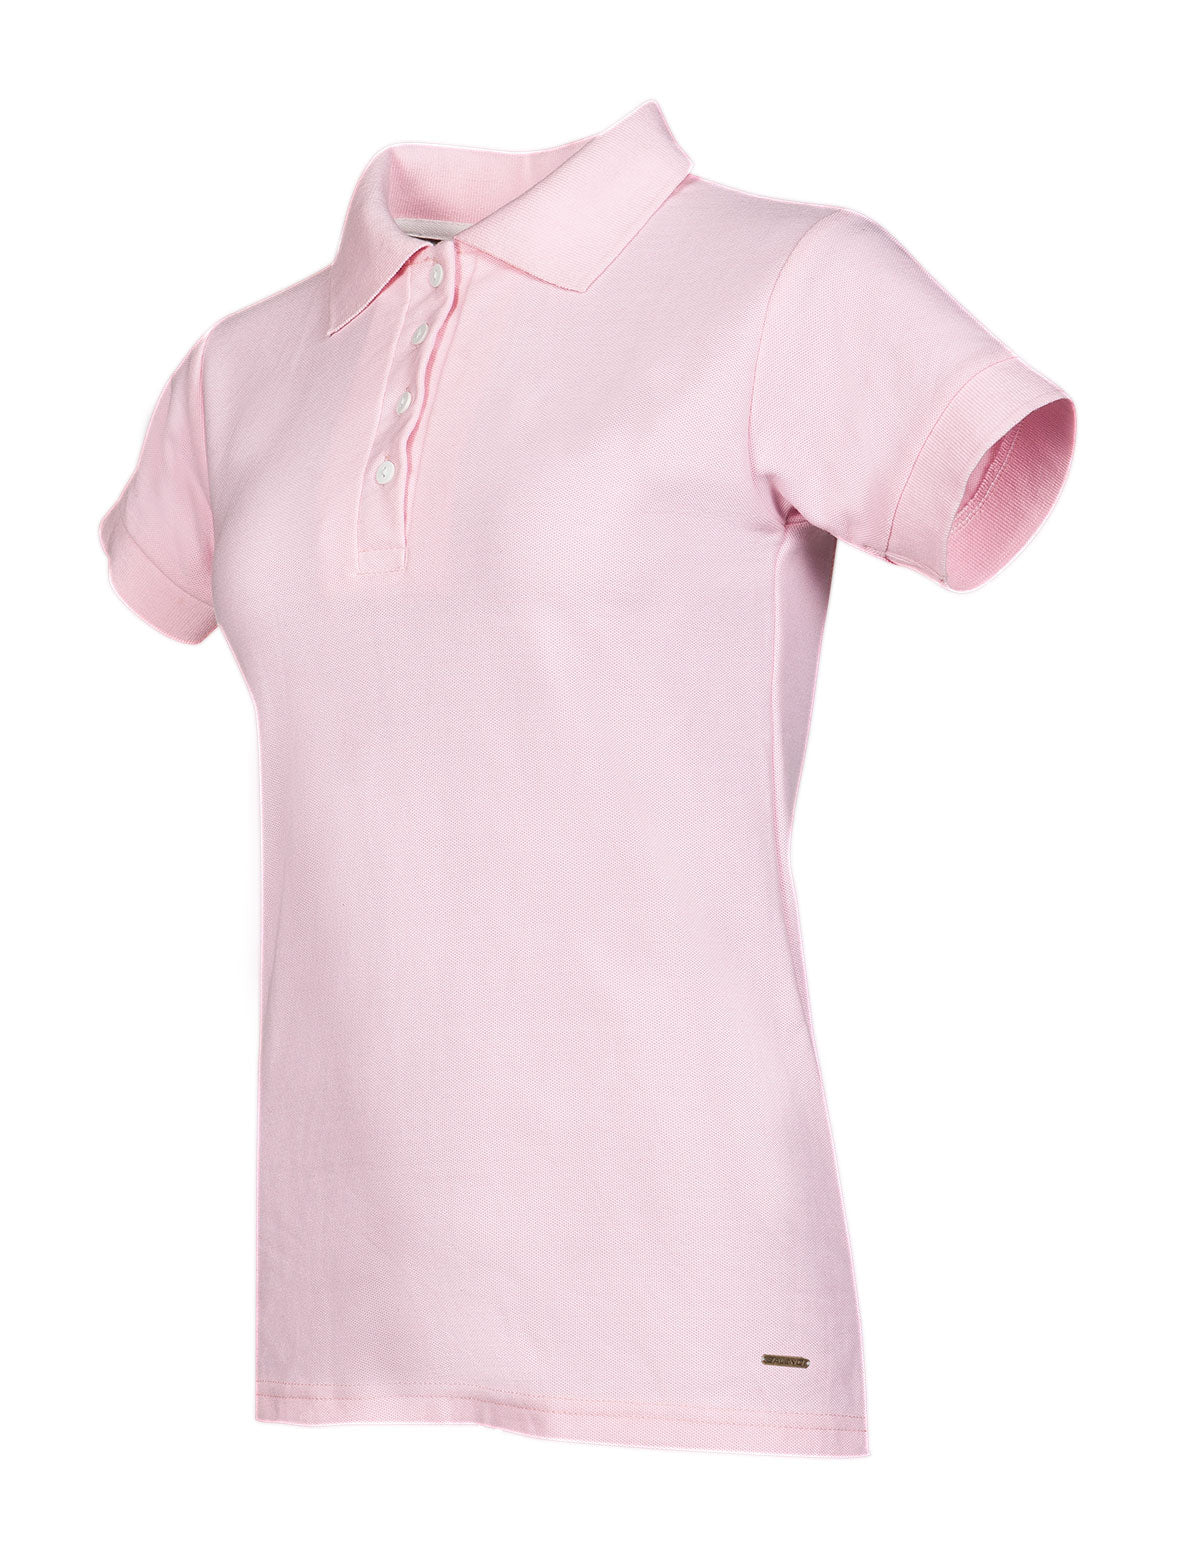 Ladies Short Sleeve Summer Polo Shirt by Baleno in Pink